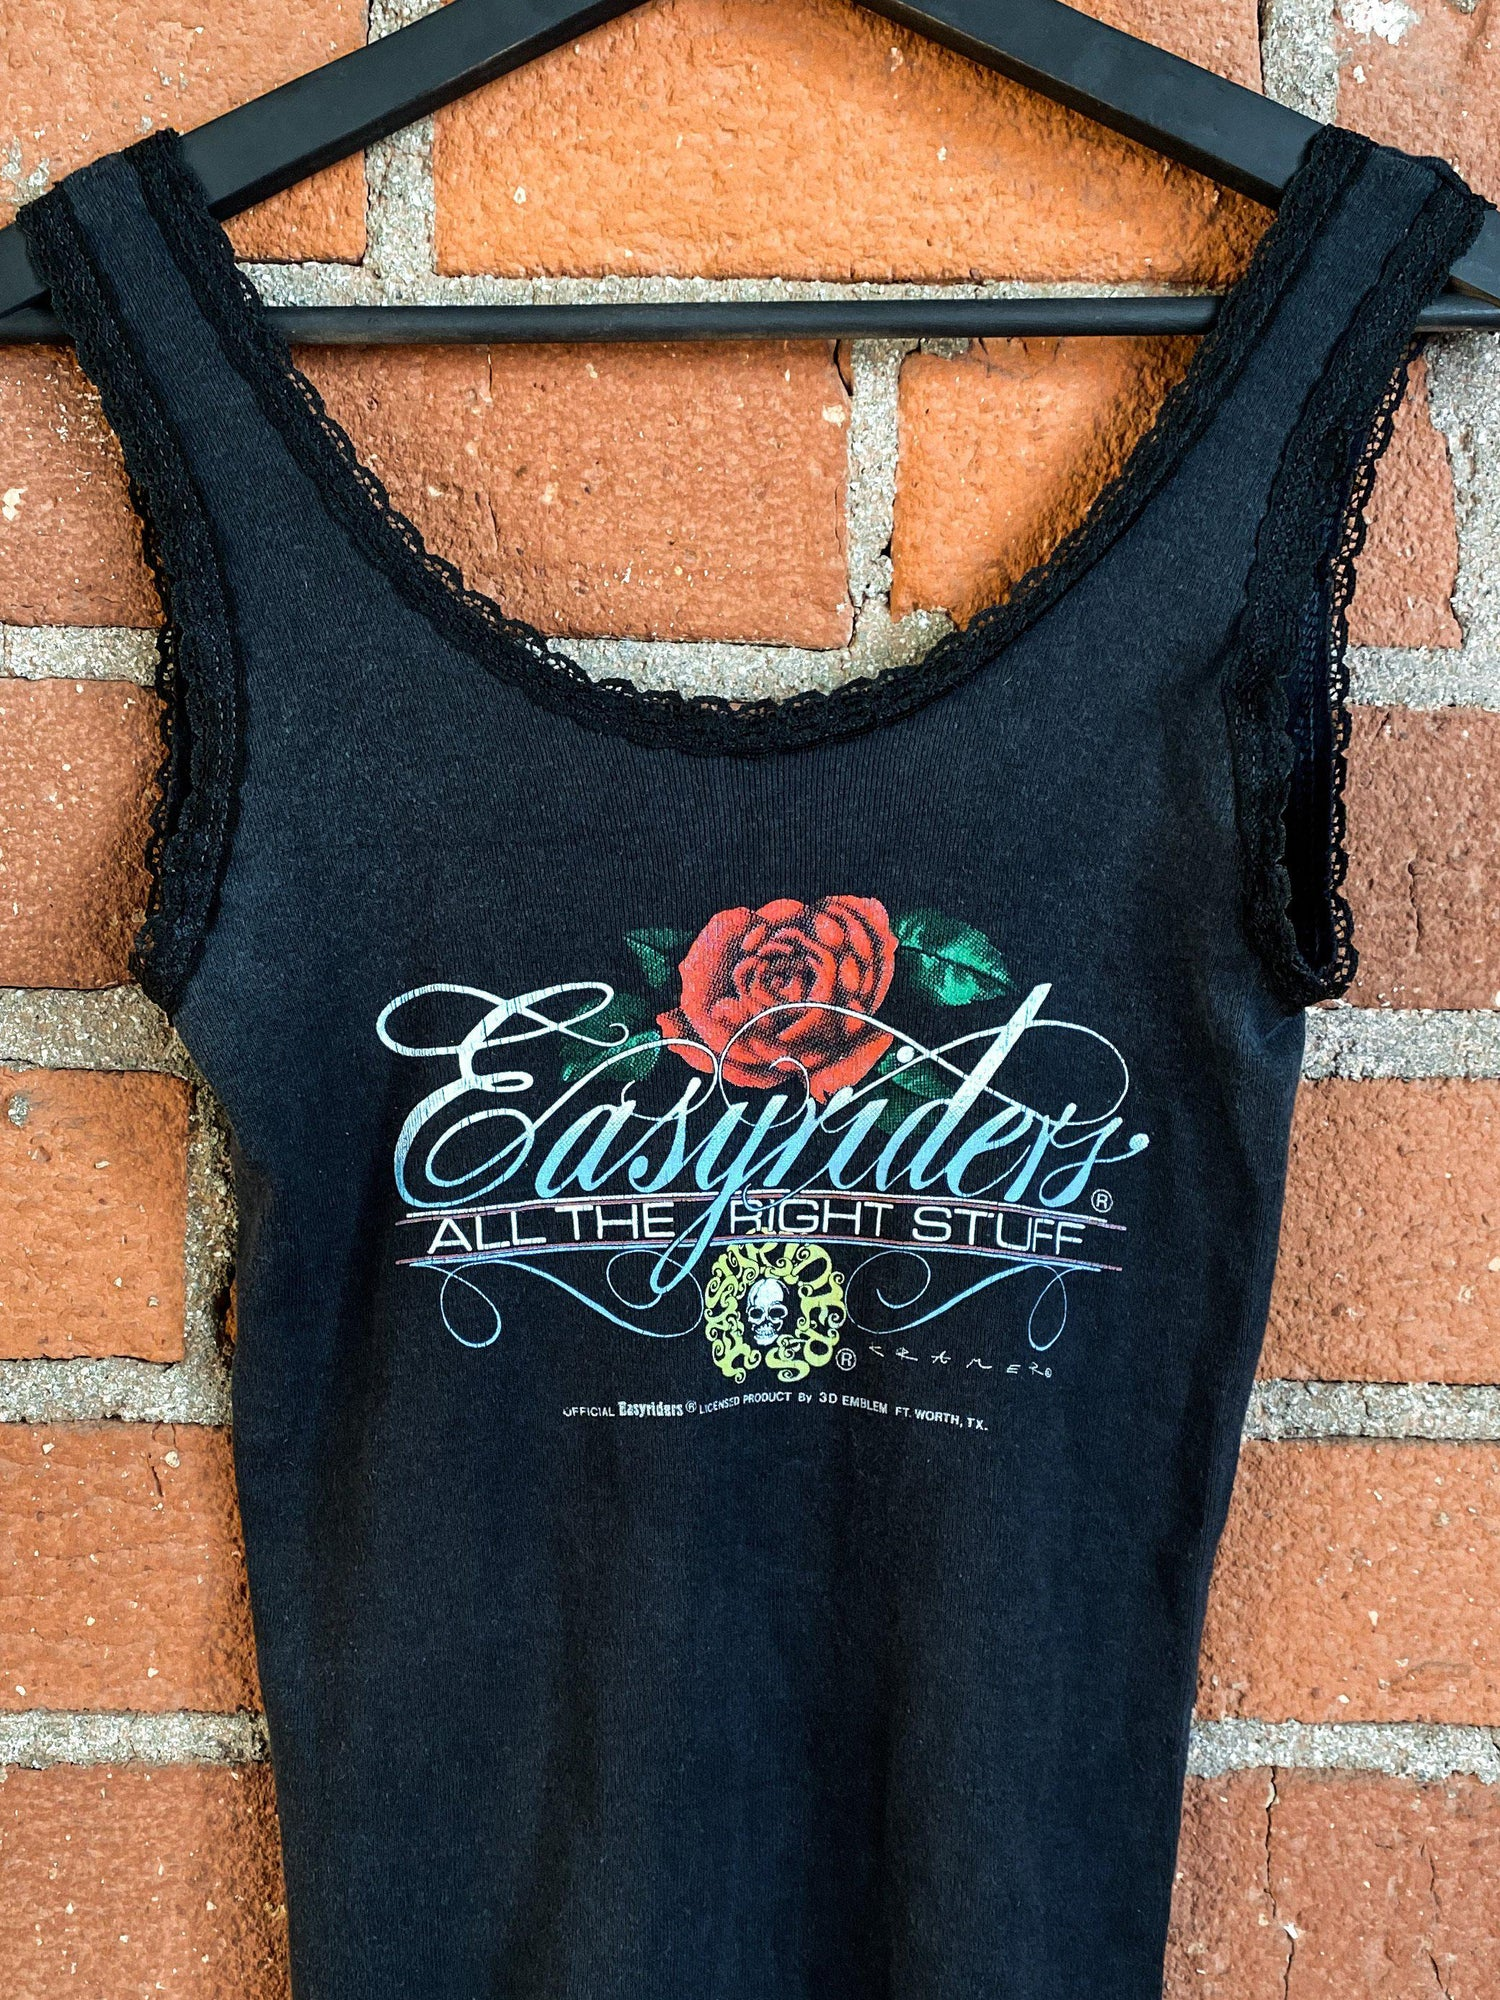 1989 Easyriders Lace Trim 50/50 Tank, Tops, BACKBITE, BACKBITE